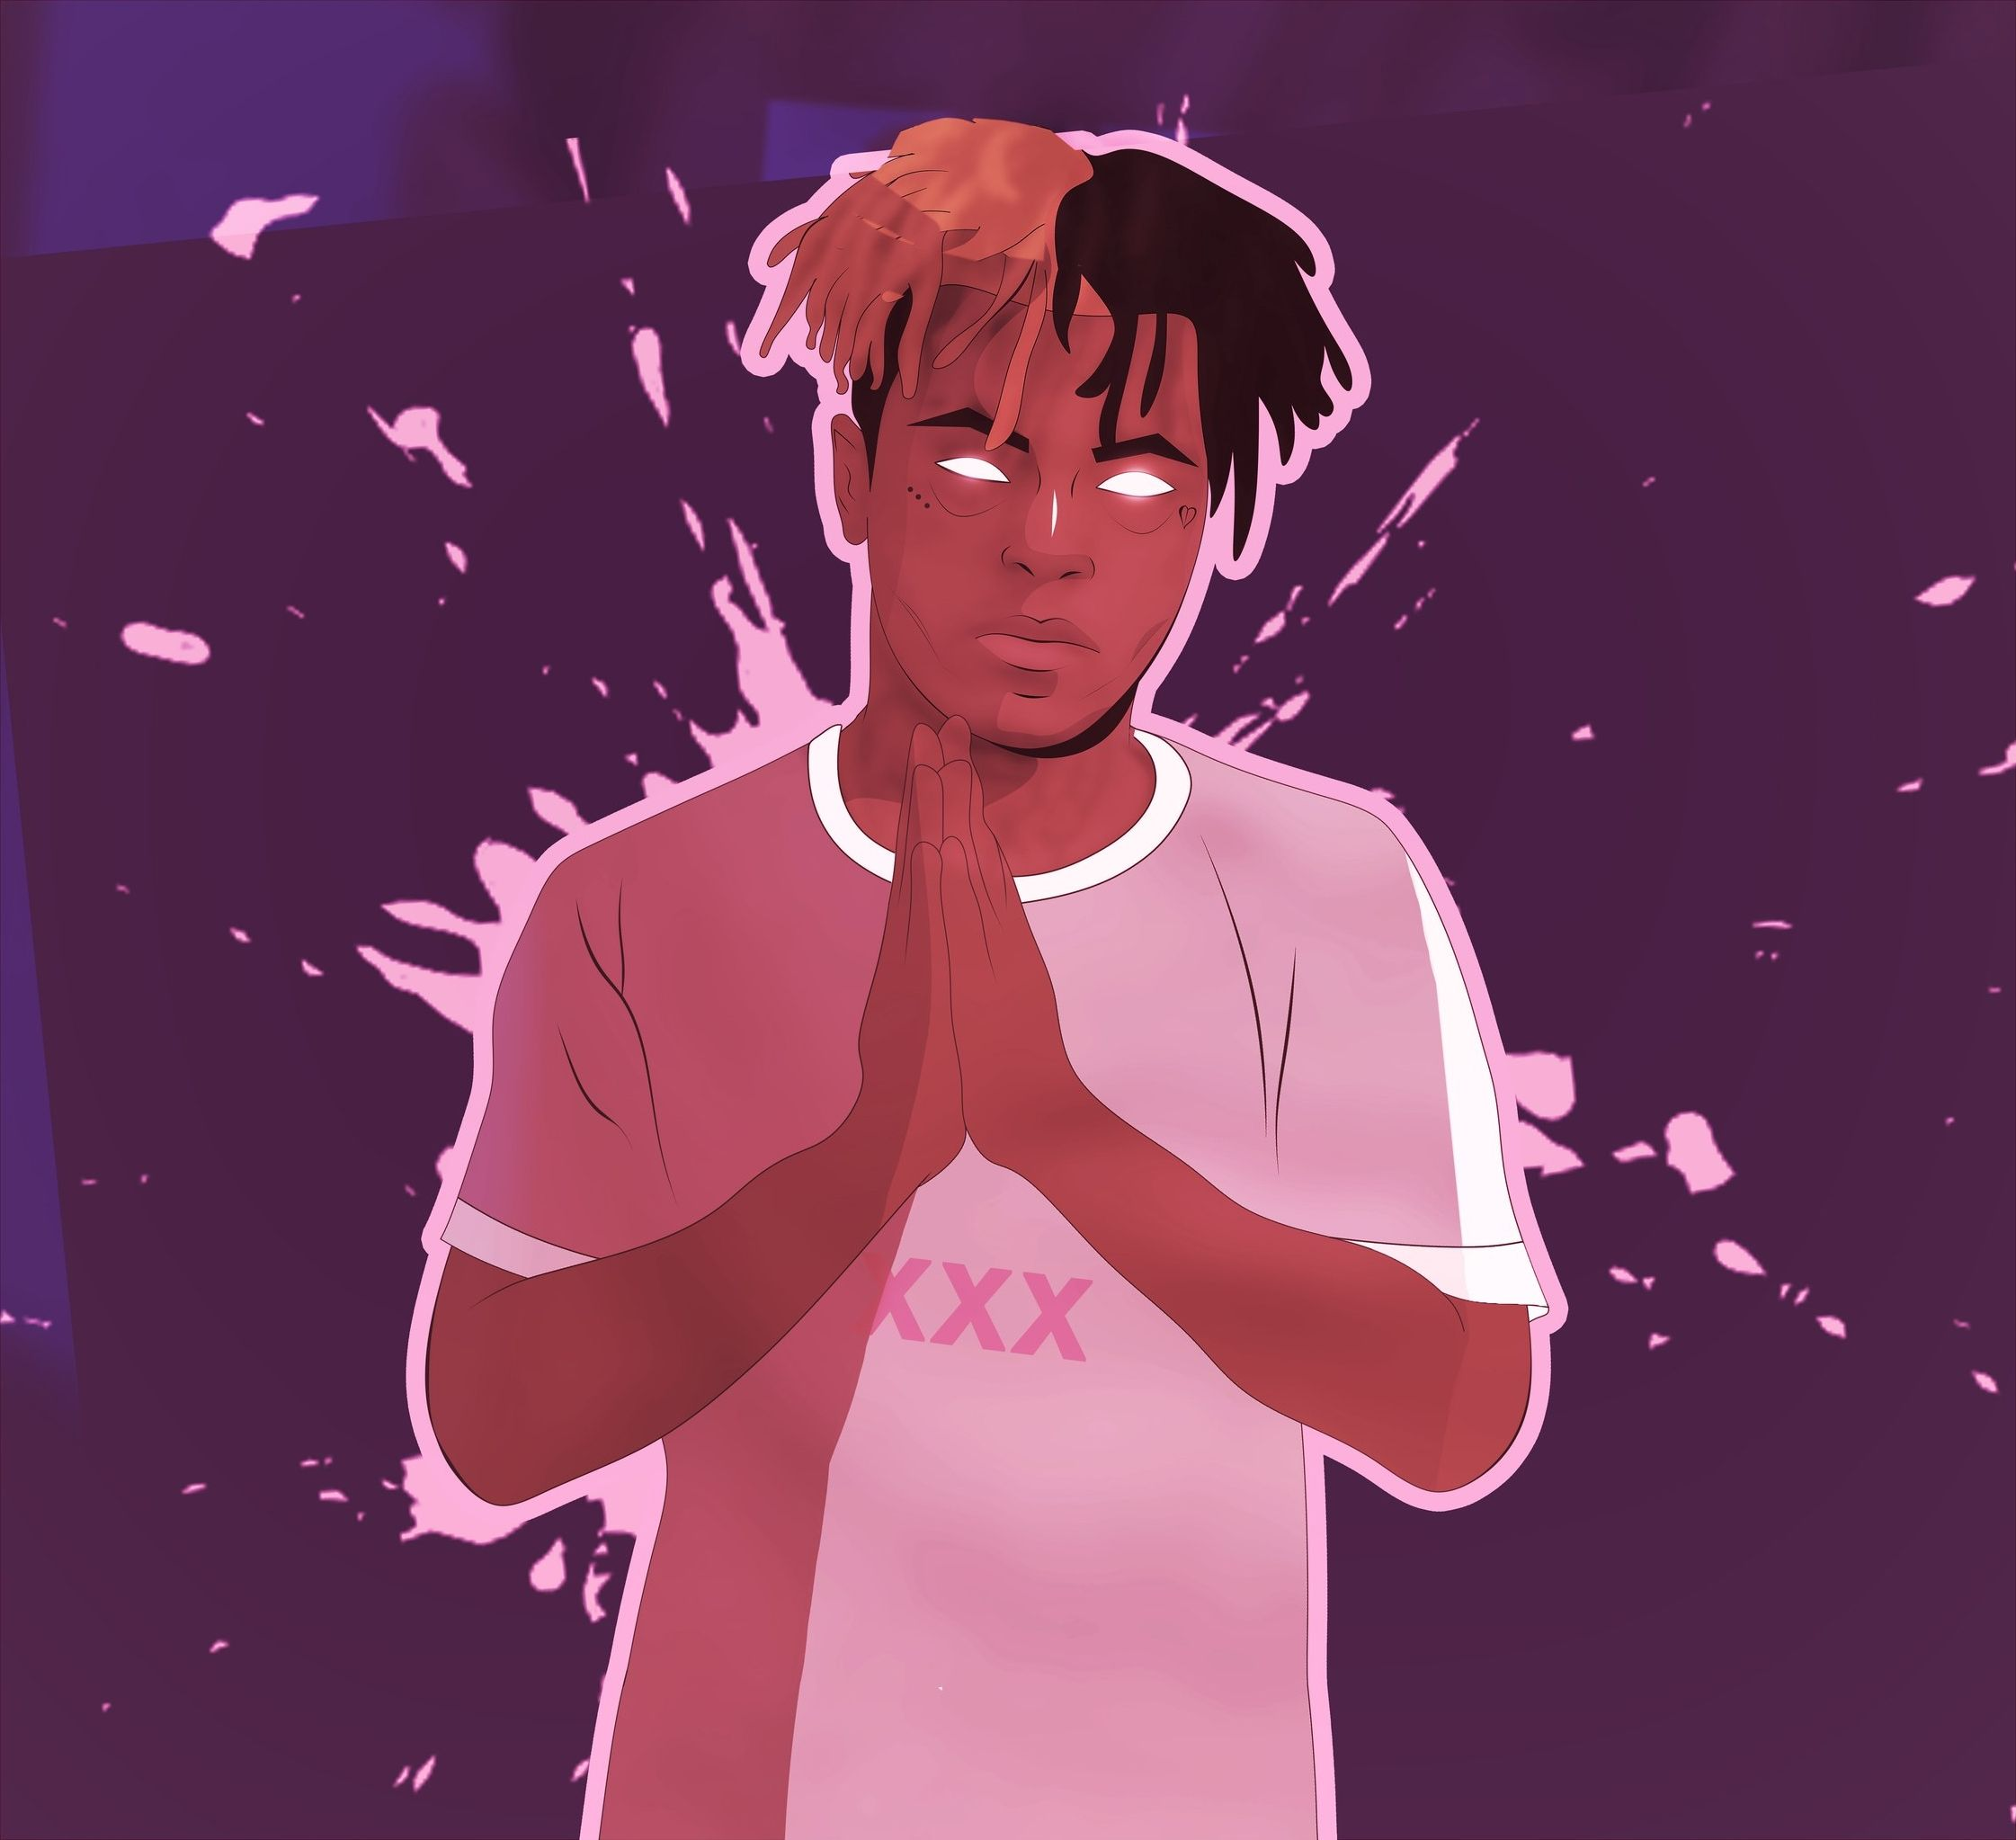 XXXTENTACION Arts this have own style, sharp but cool